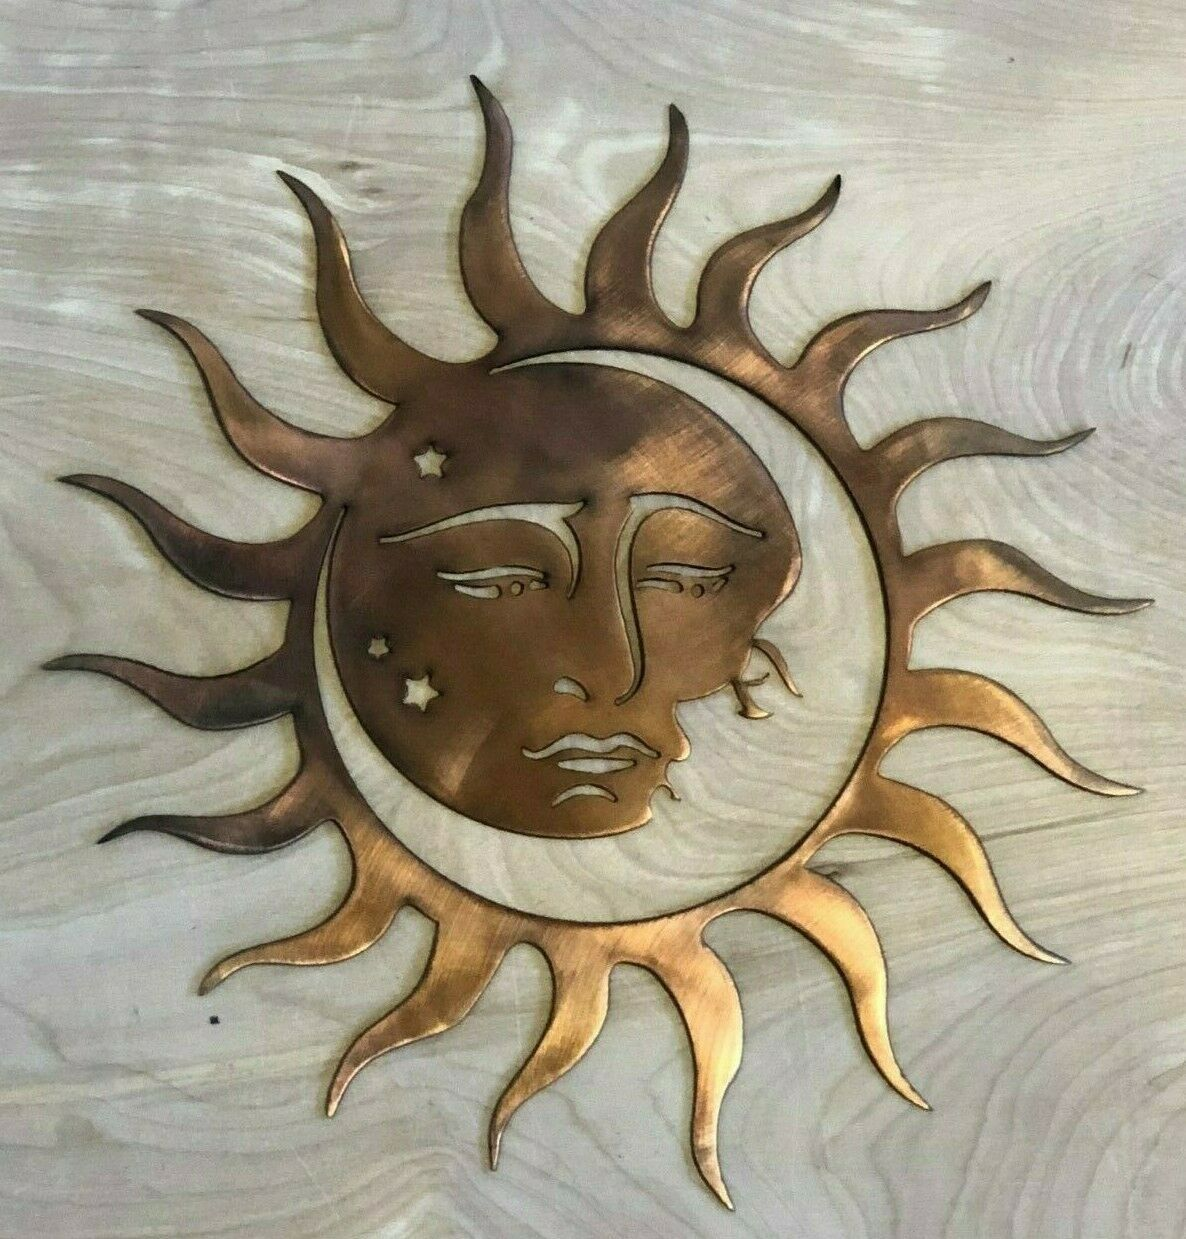 Sun And Moon Wall Metal Art Hanging With Rustic Copper Finish In 2020 Moon Wall Art Metal Sun Wall Art Hanging Art